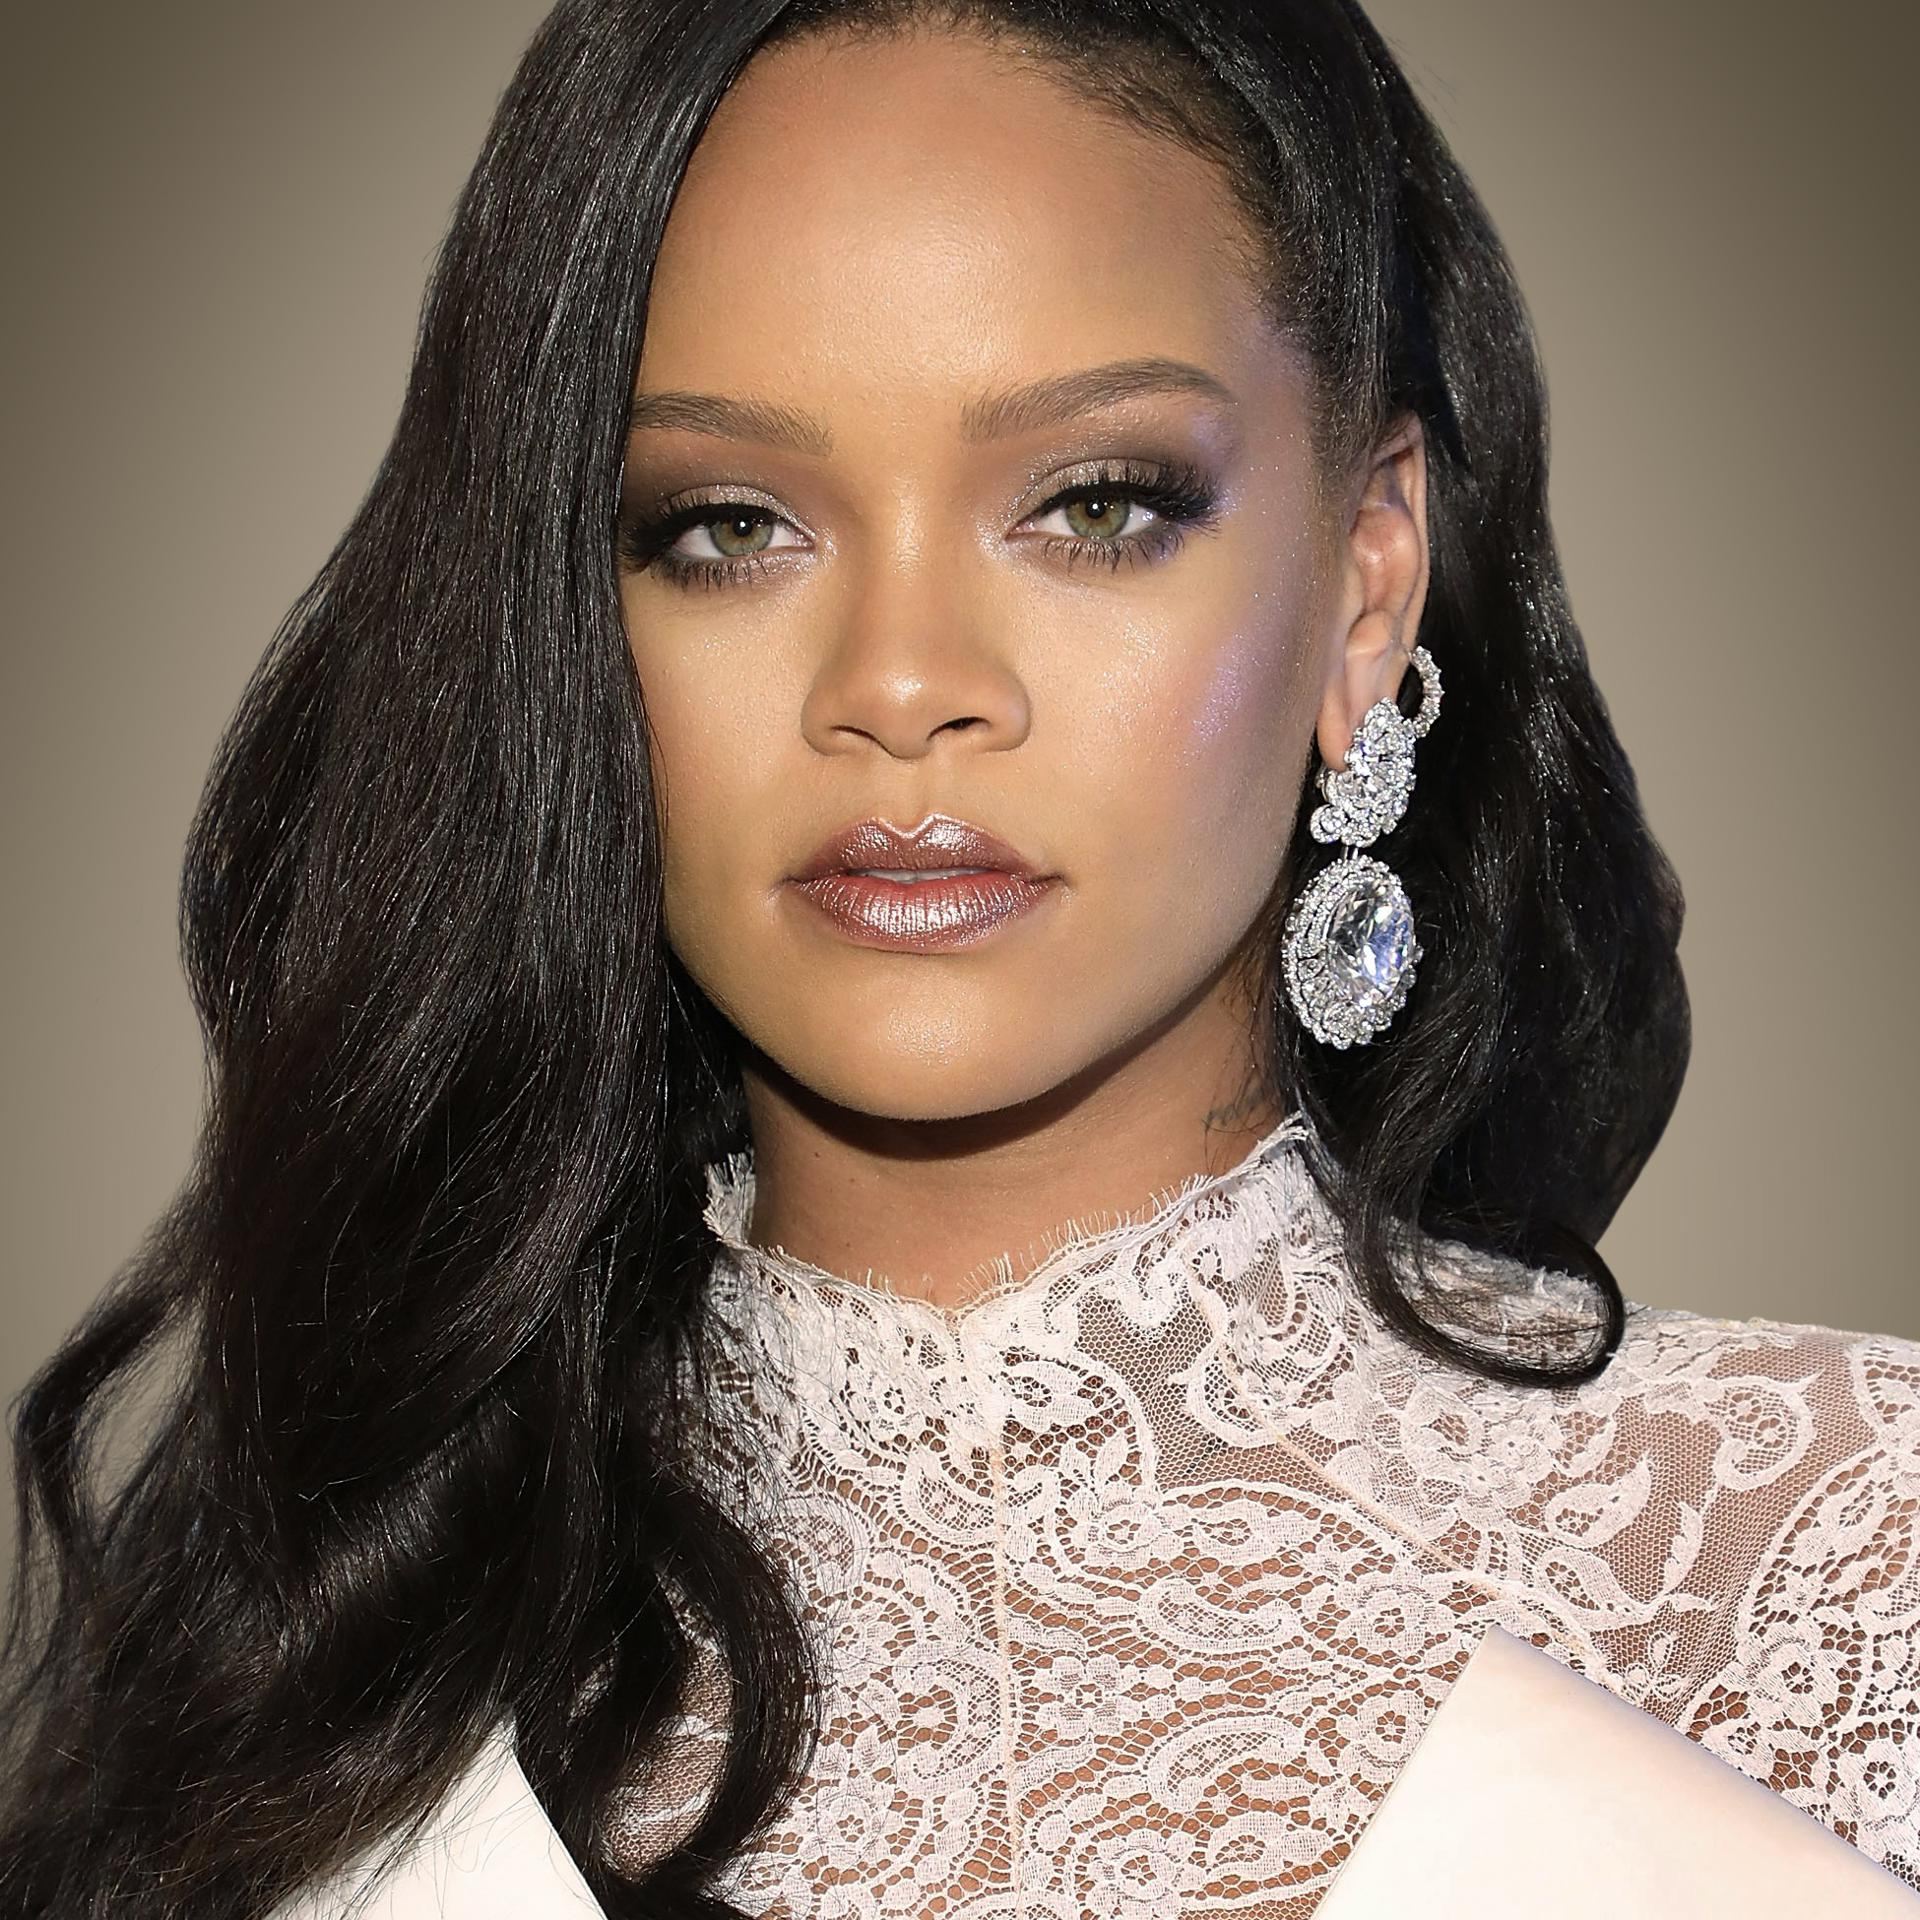 who is rihanna with now